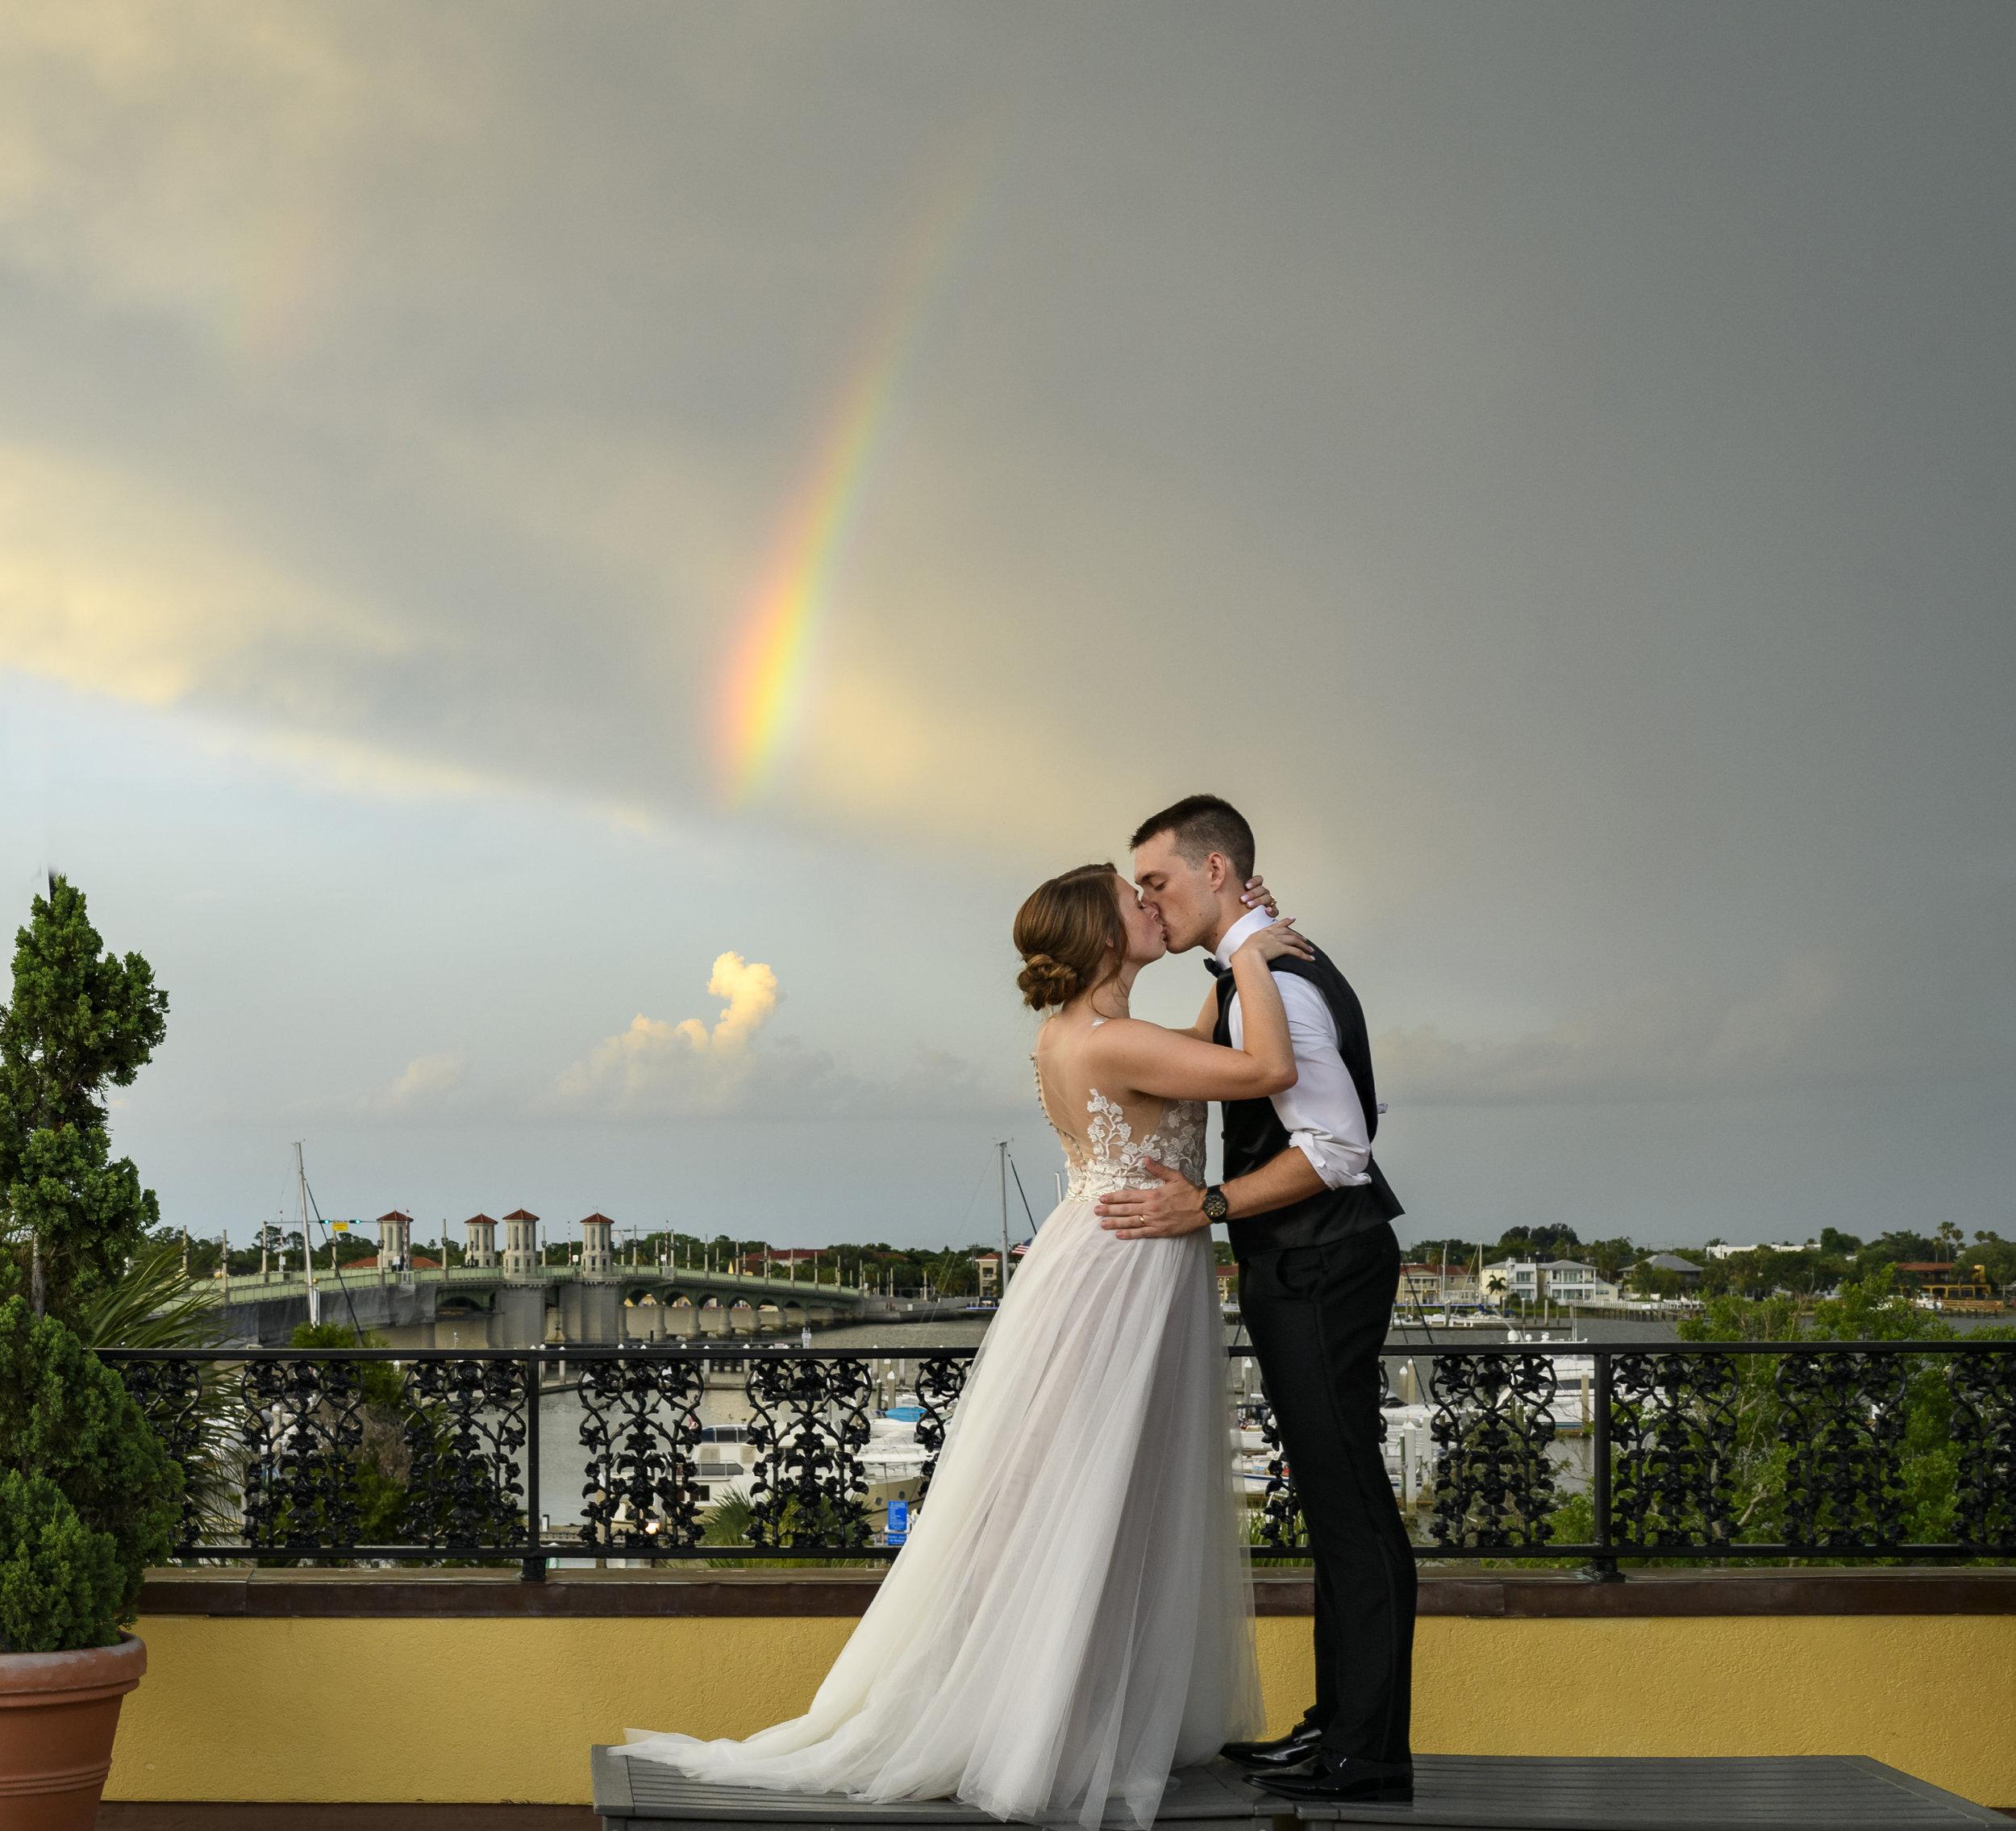 .A glimpse of a rainbow over the Matanzas Bay   in downtown Saint Augustine